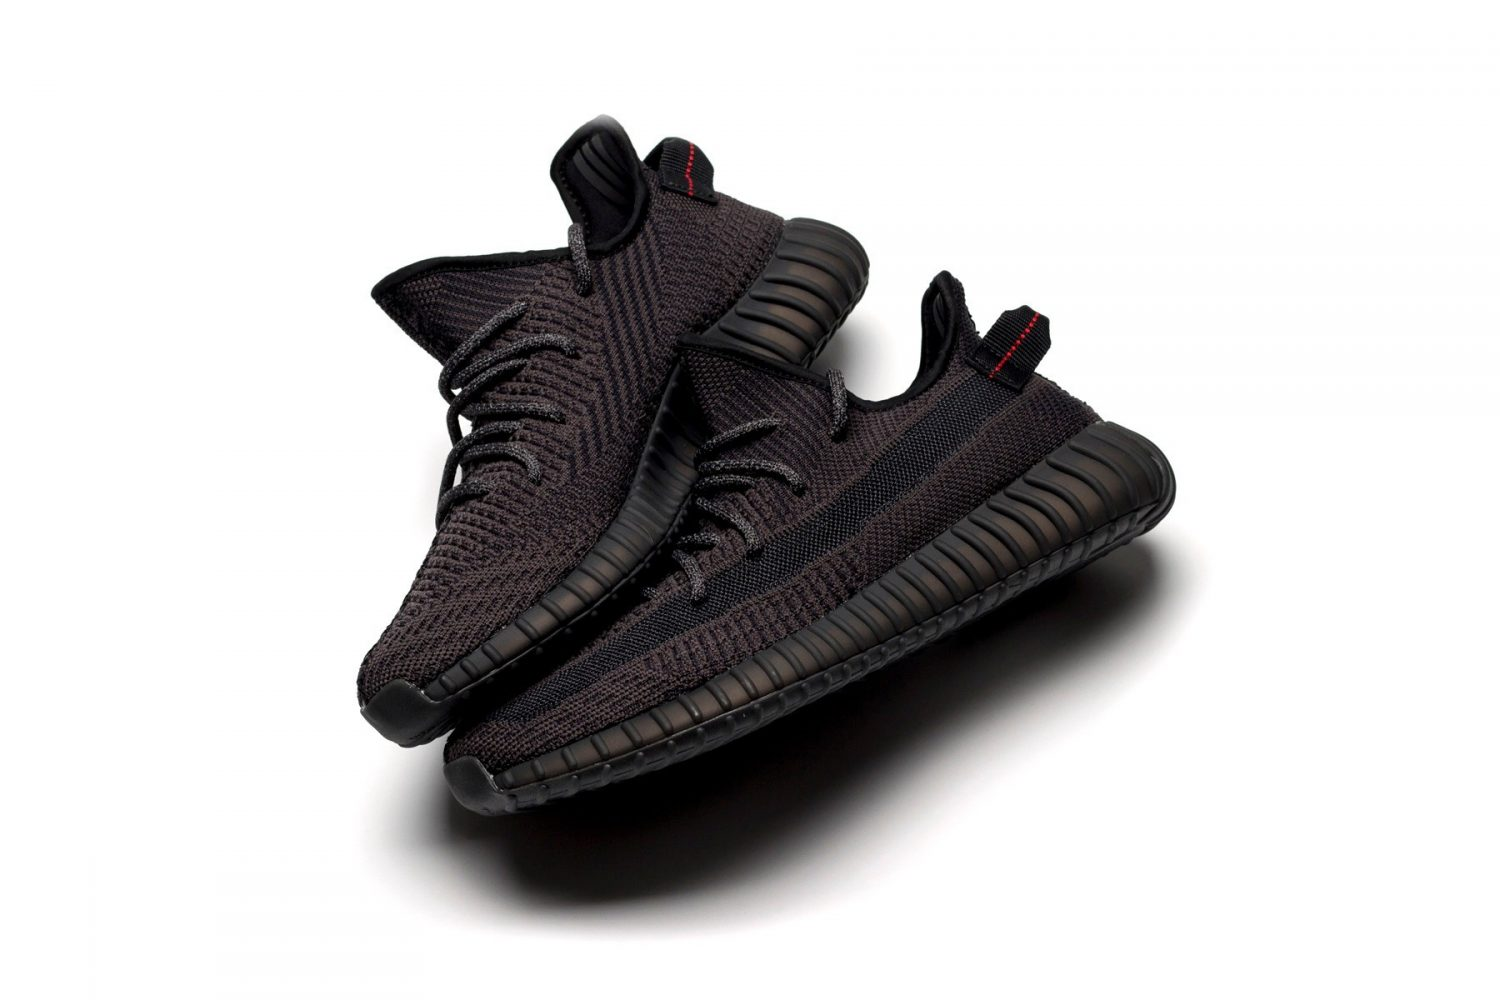 How to Cop the All Black adidas YEEZY BOOST 350 V2 The